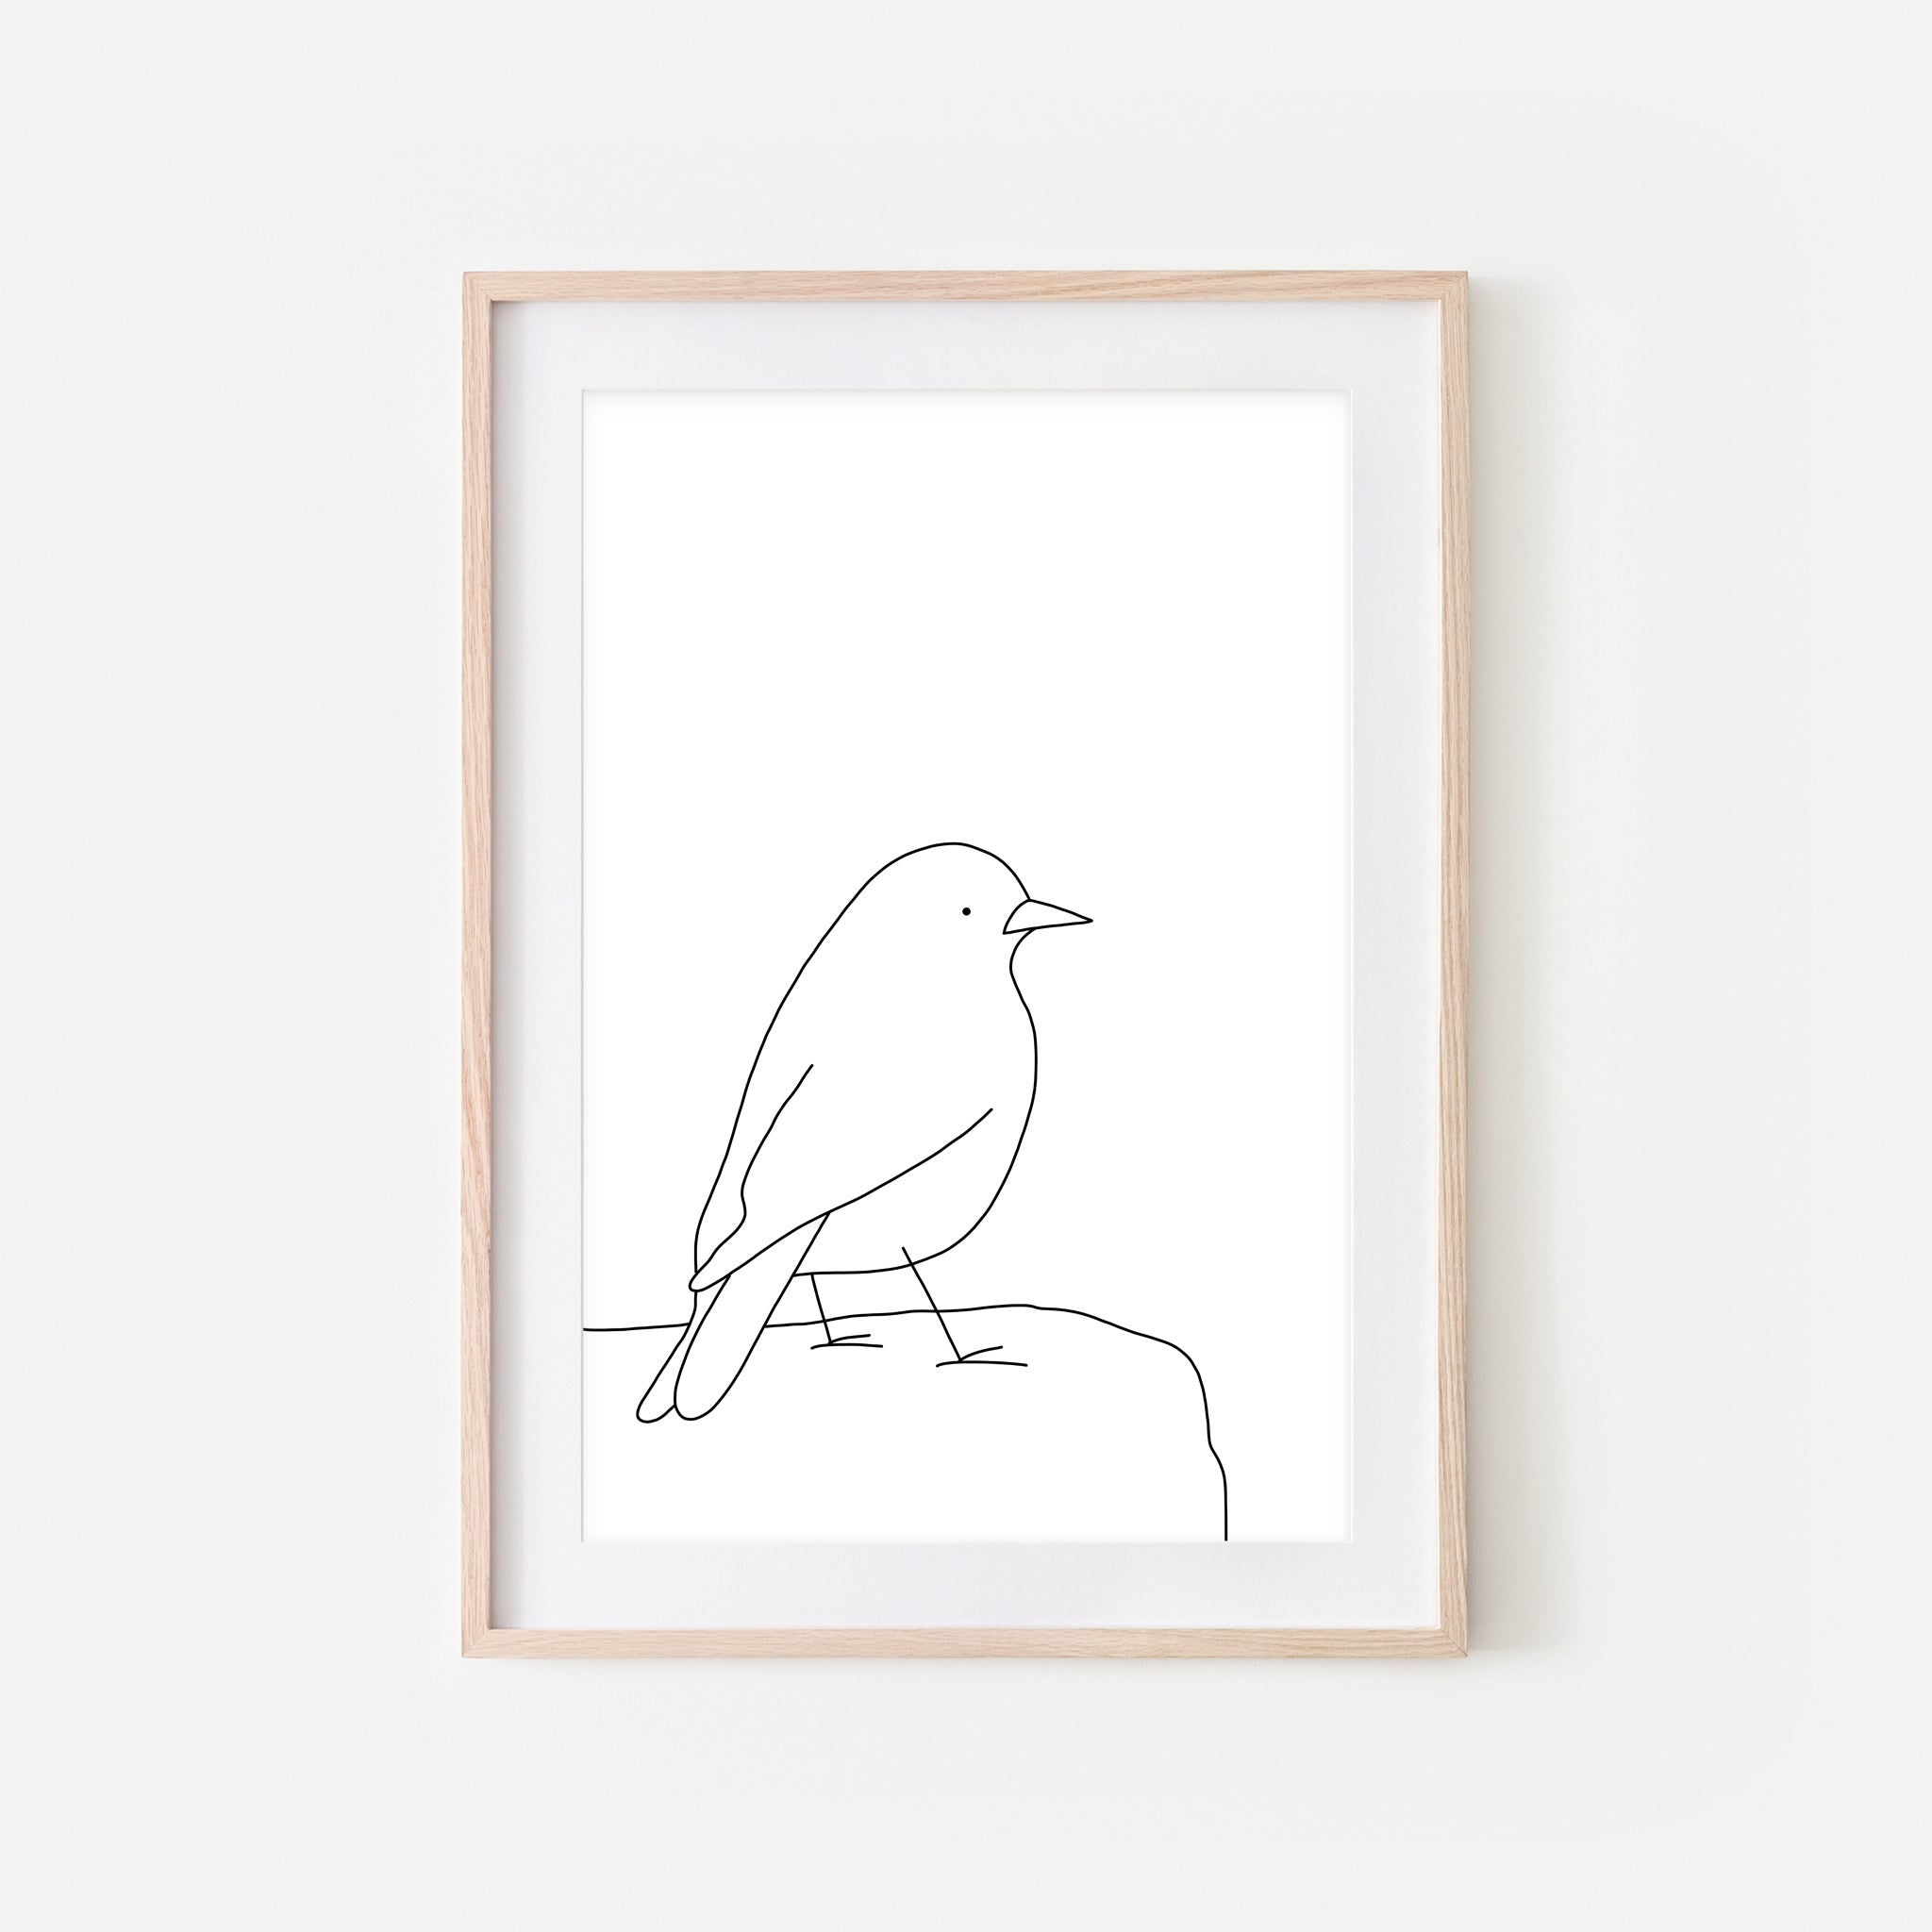 Bird on a Rock Wall Art No. 11 - Black and White Line Drawing - Print, Poster or Printable Download